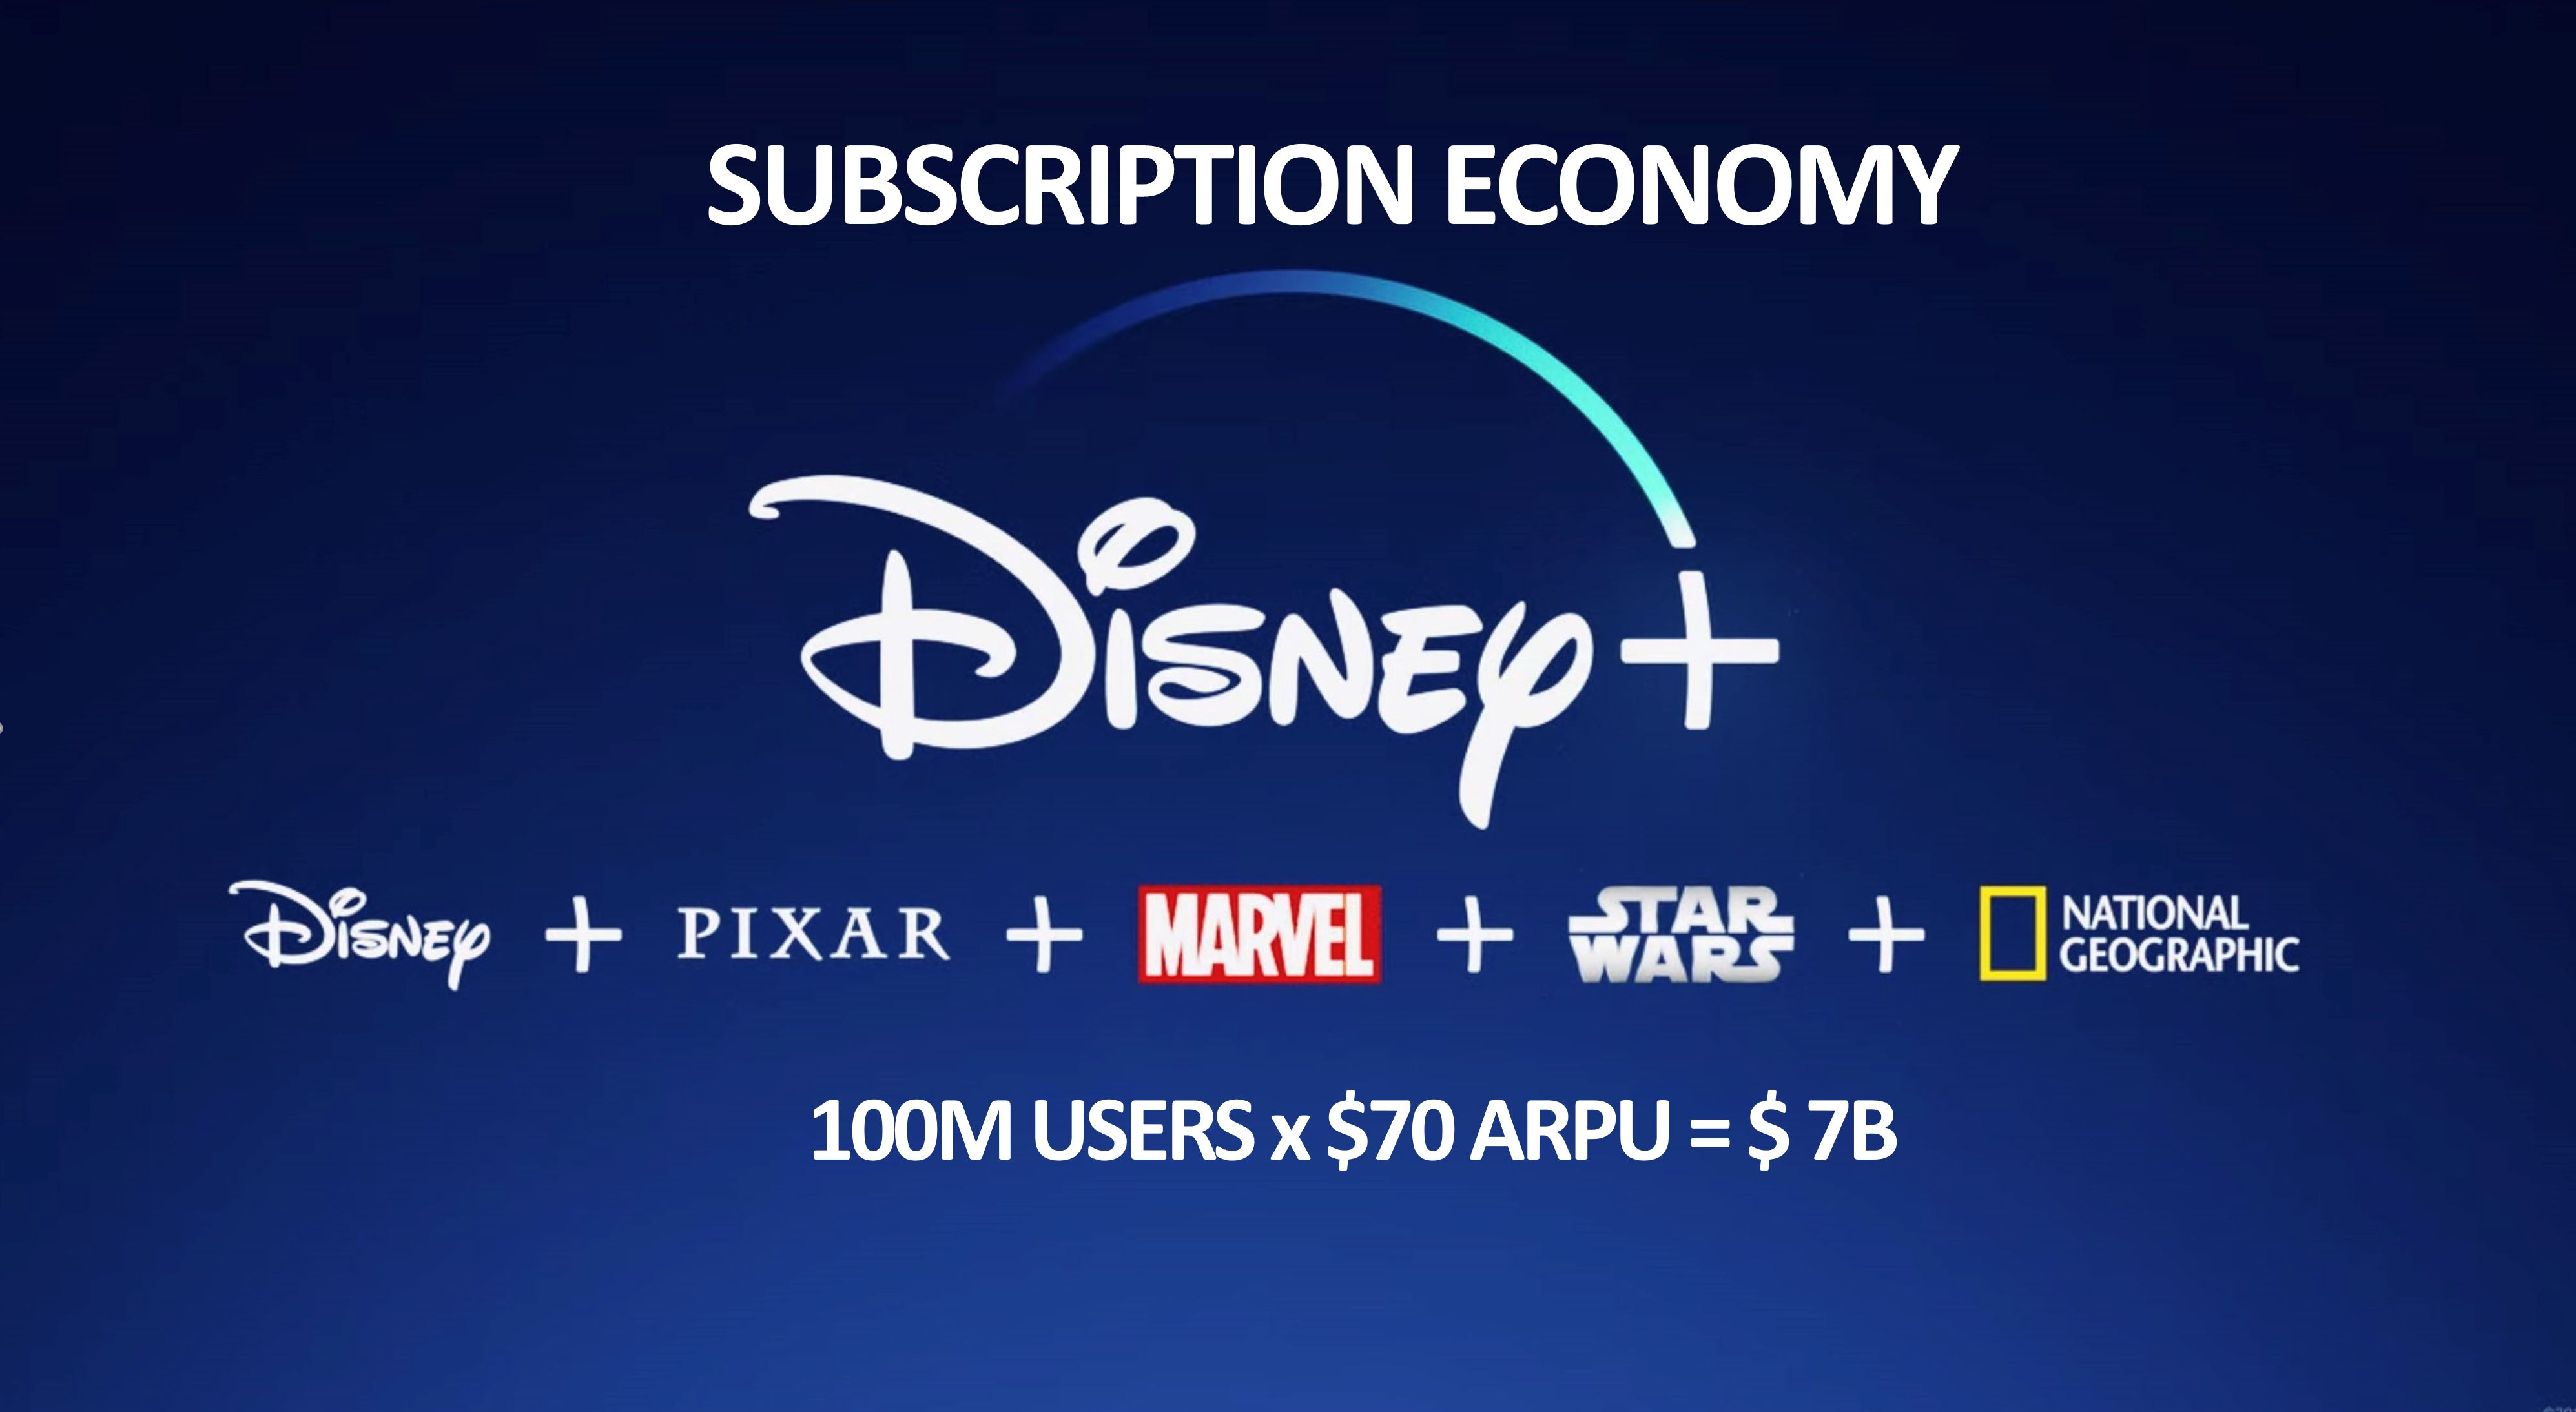 DISNEY+ AT 100 MILLION PAID SUBS- MARKETING MEDIA KEYNOTE SPEAKER IGOR BEUKER